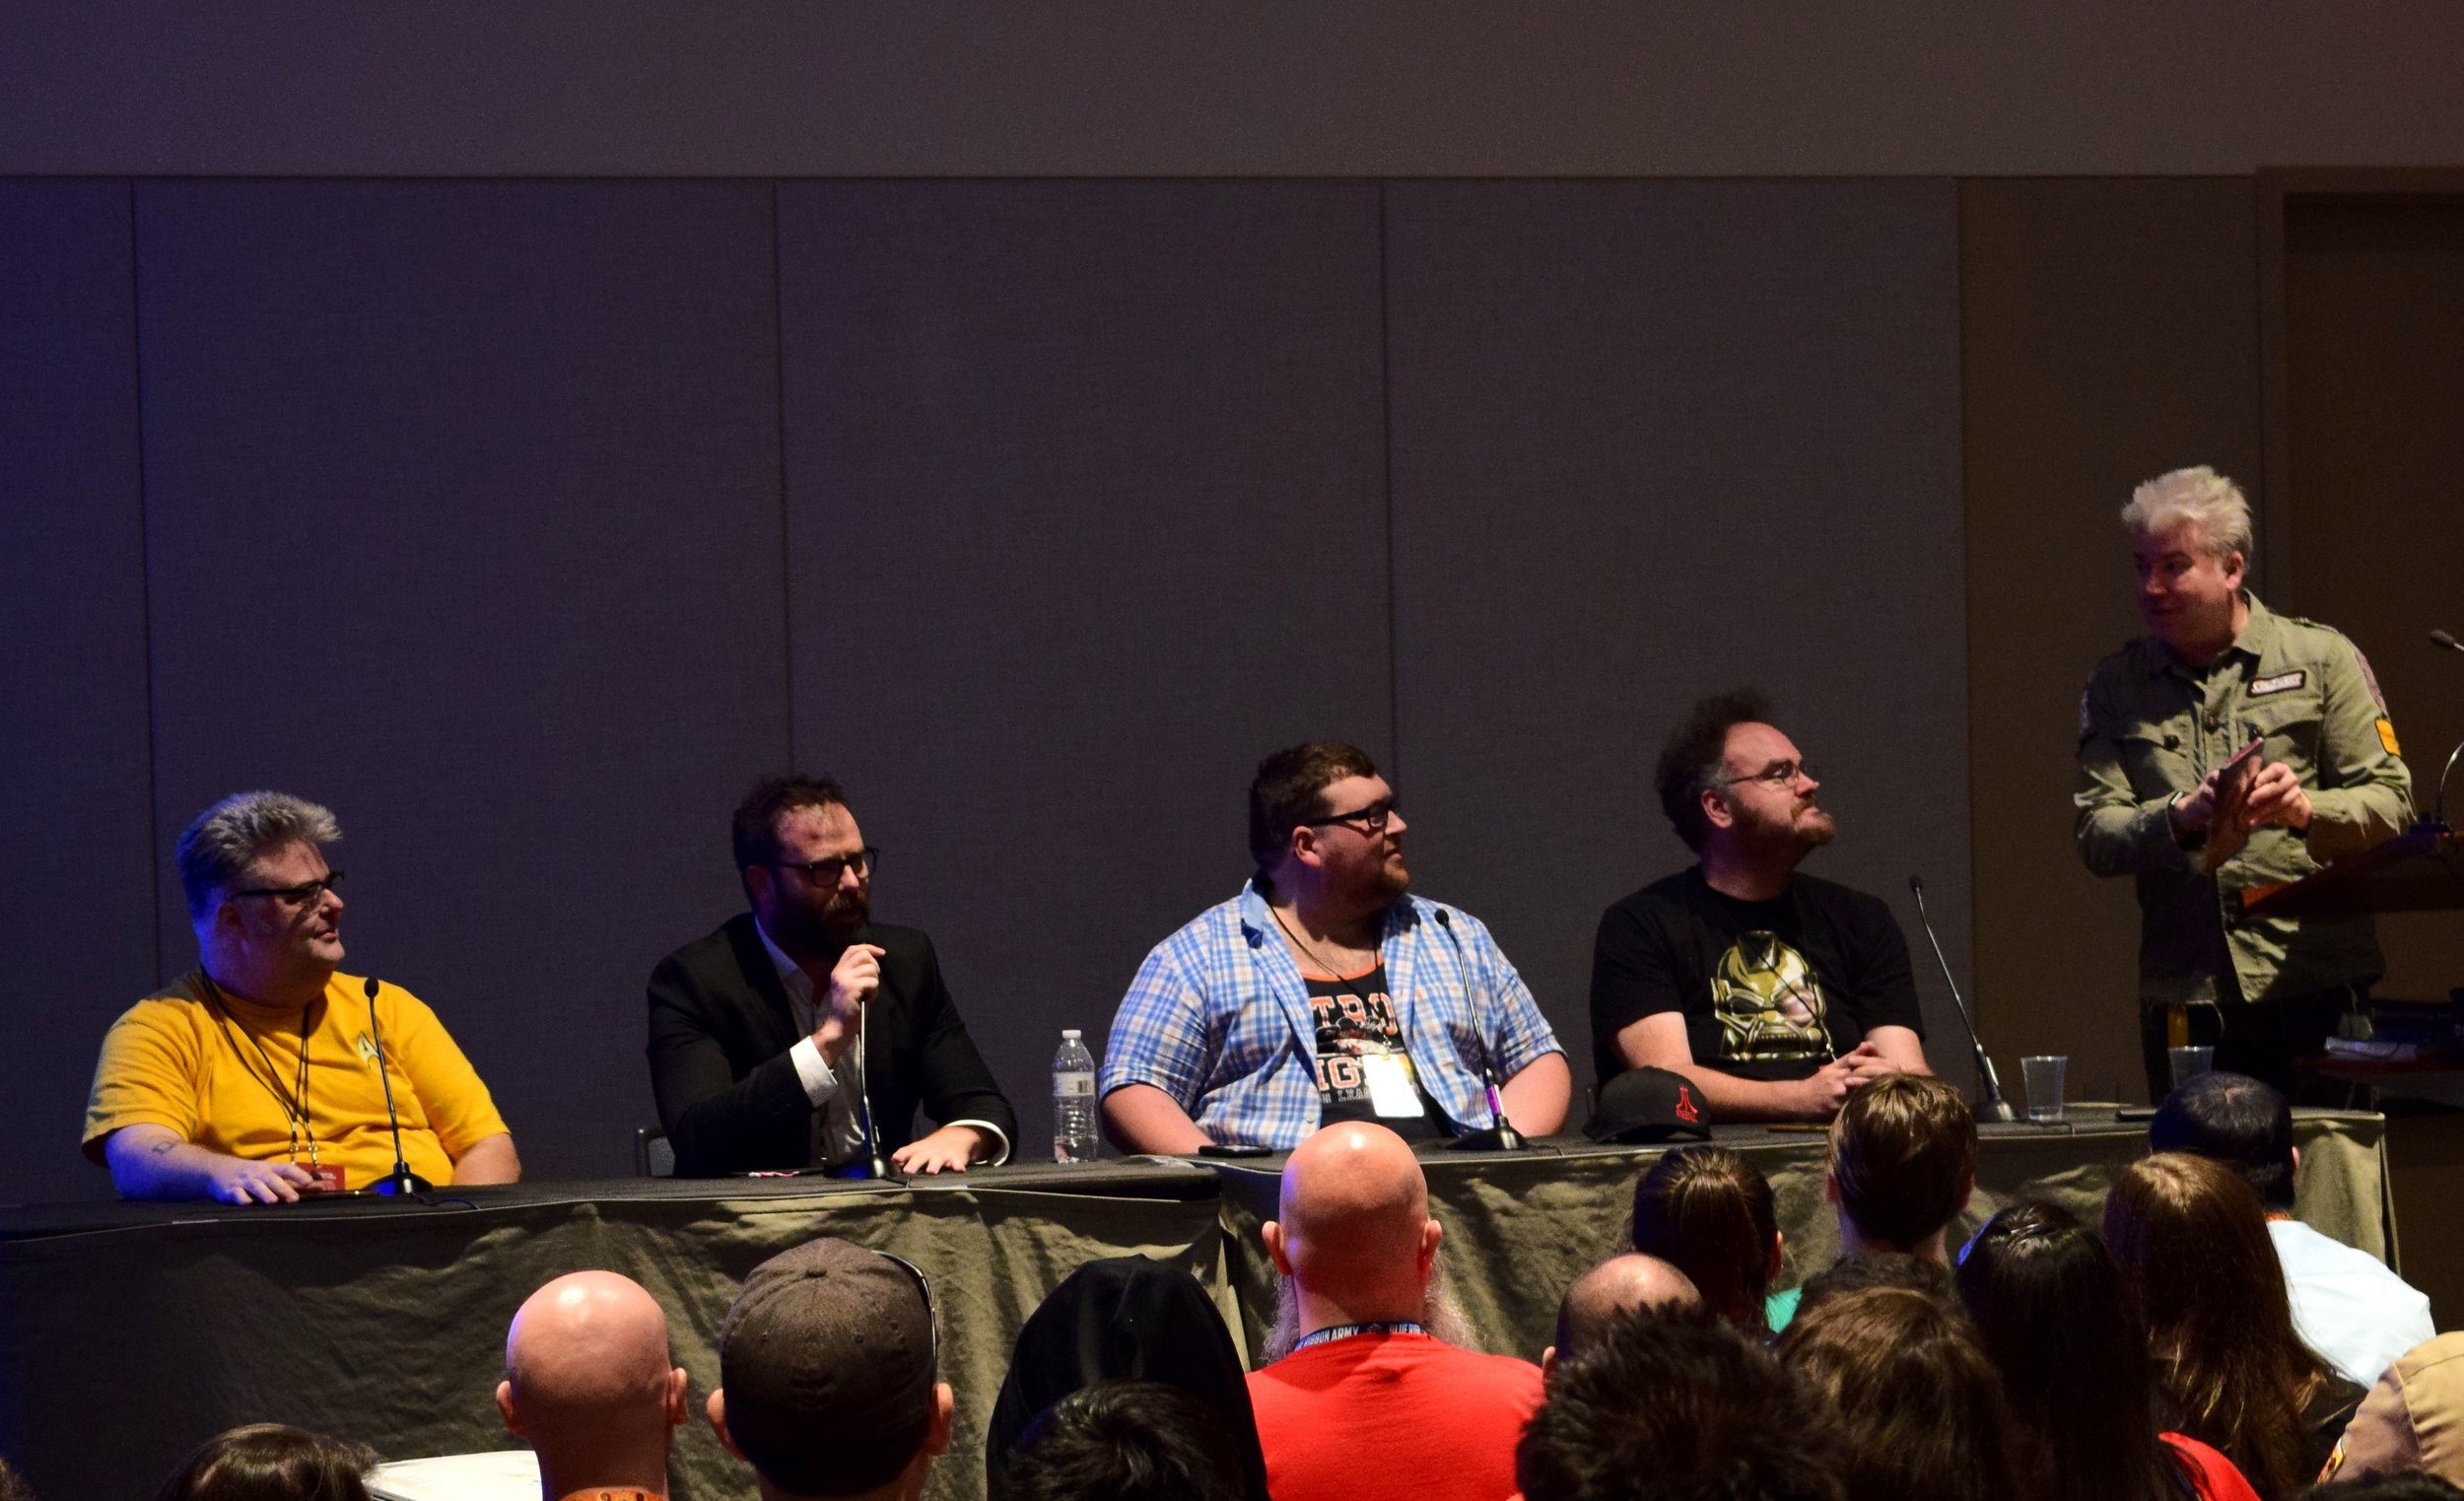 Paul Goebel, T.J. Chambers, Tommy Bechtold, Jon Schnepp, and Chris Gore in the Film Threat panel at Phoenix Comic Con 2017. (1)